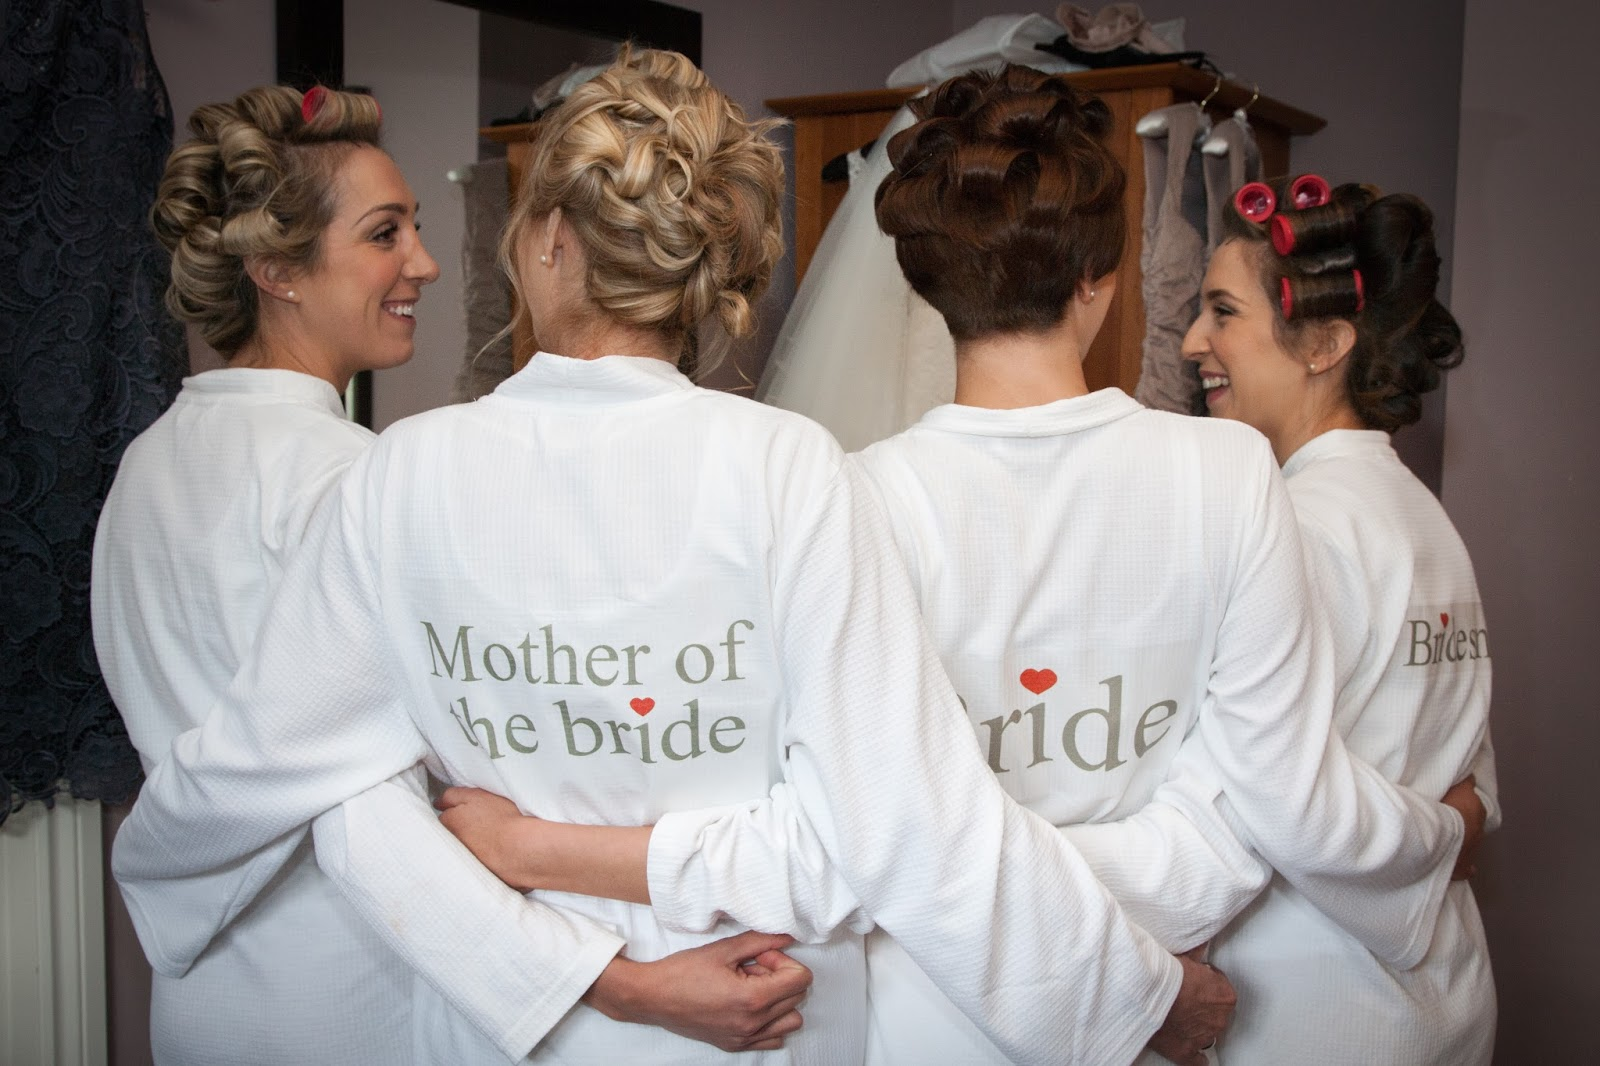 Morning preparations, wedding, bridesmaids, matching dressing gowns, personalised gowns